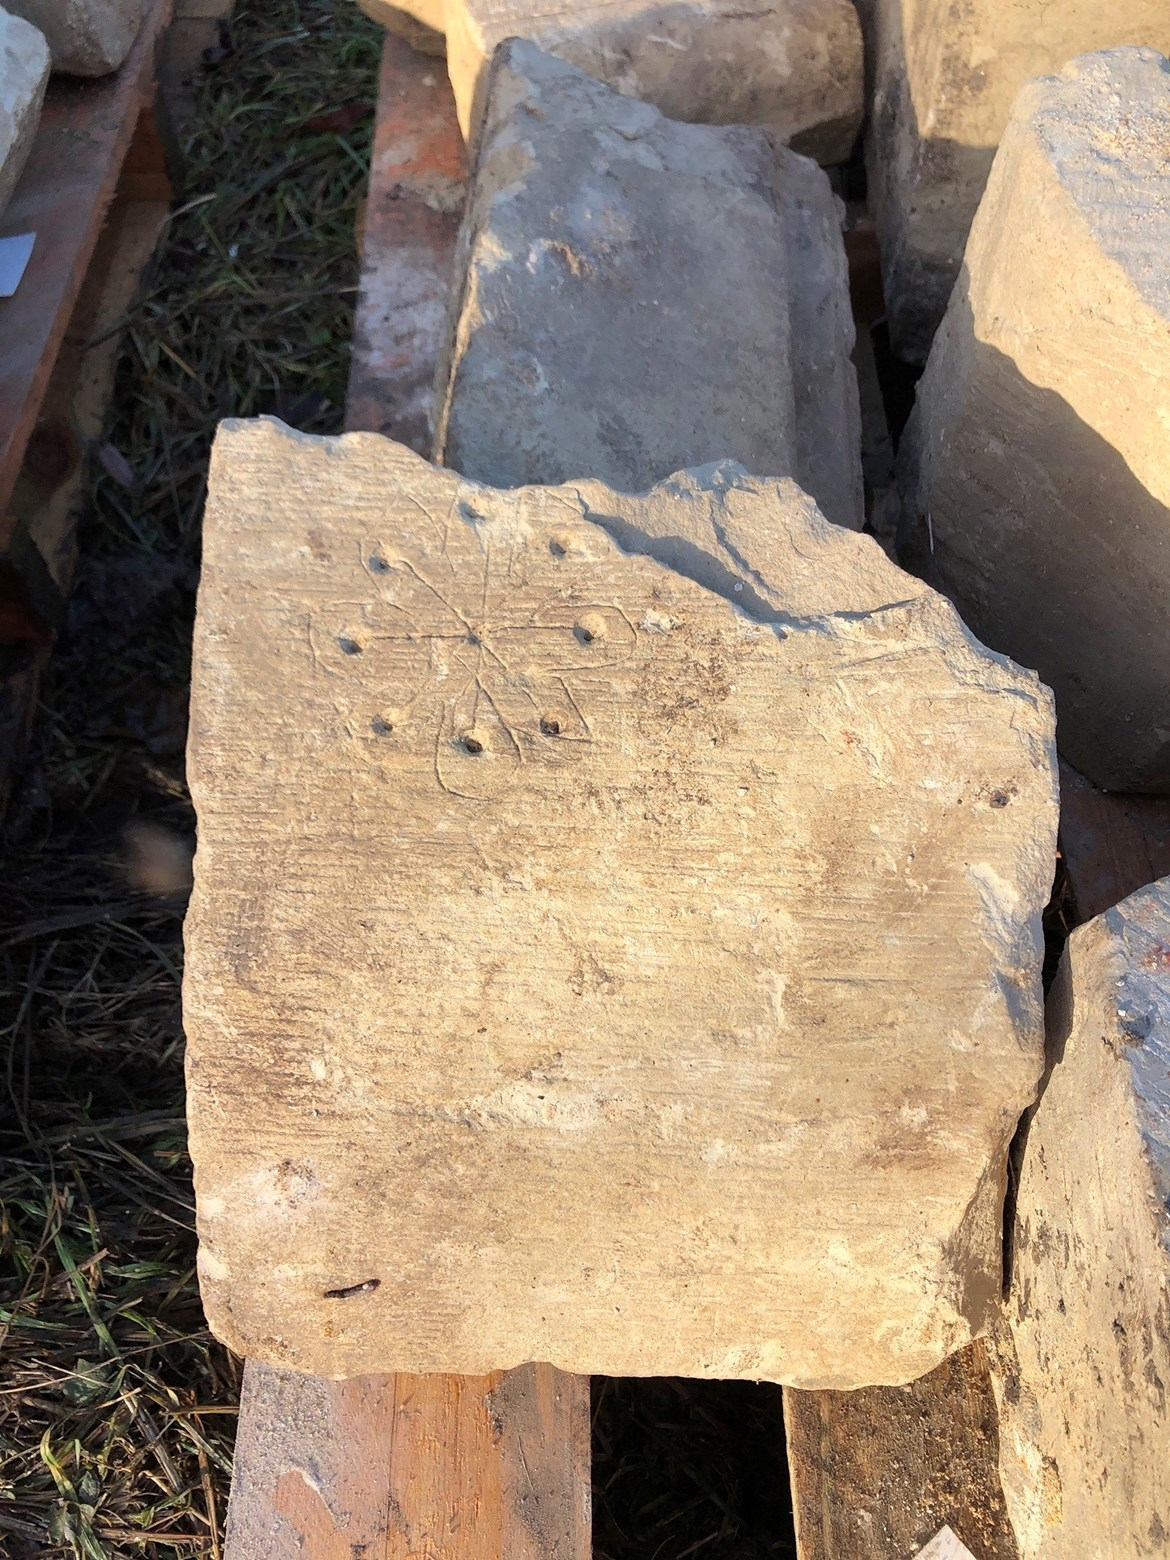 St Mary's Graffiti October 2020: Credit: HS2 Ltd Medieval graffiti associated with repelling evil spirits unearthed by HS2 in Stoke Mandeville. (Arcehology, Stoke Madeville, Buckinghamshire, medieval, heritage, witching)